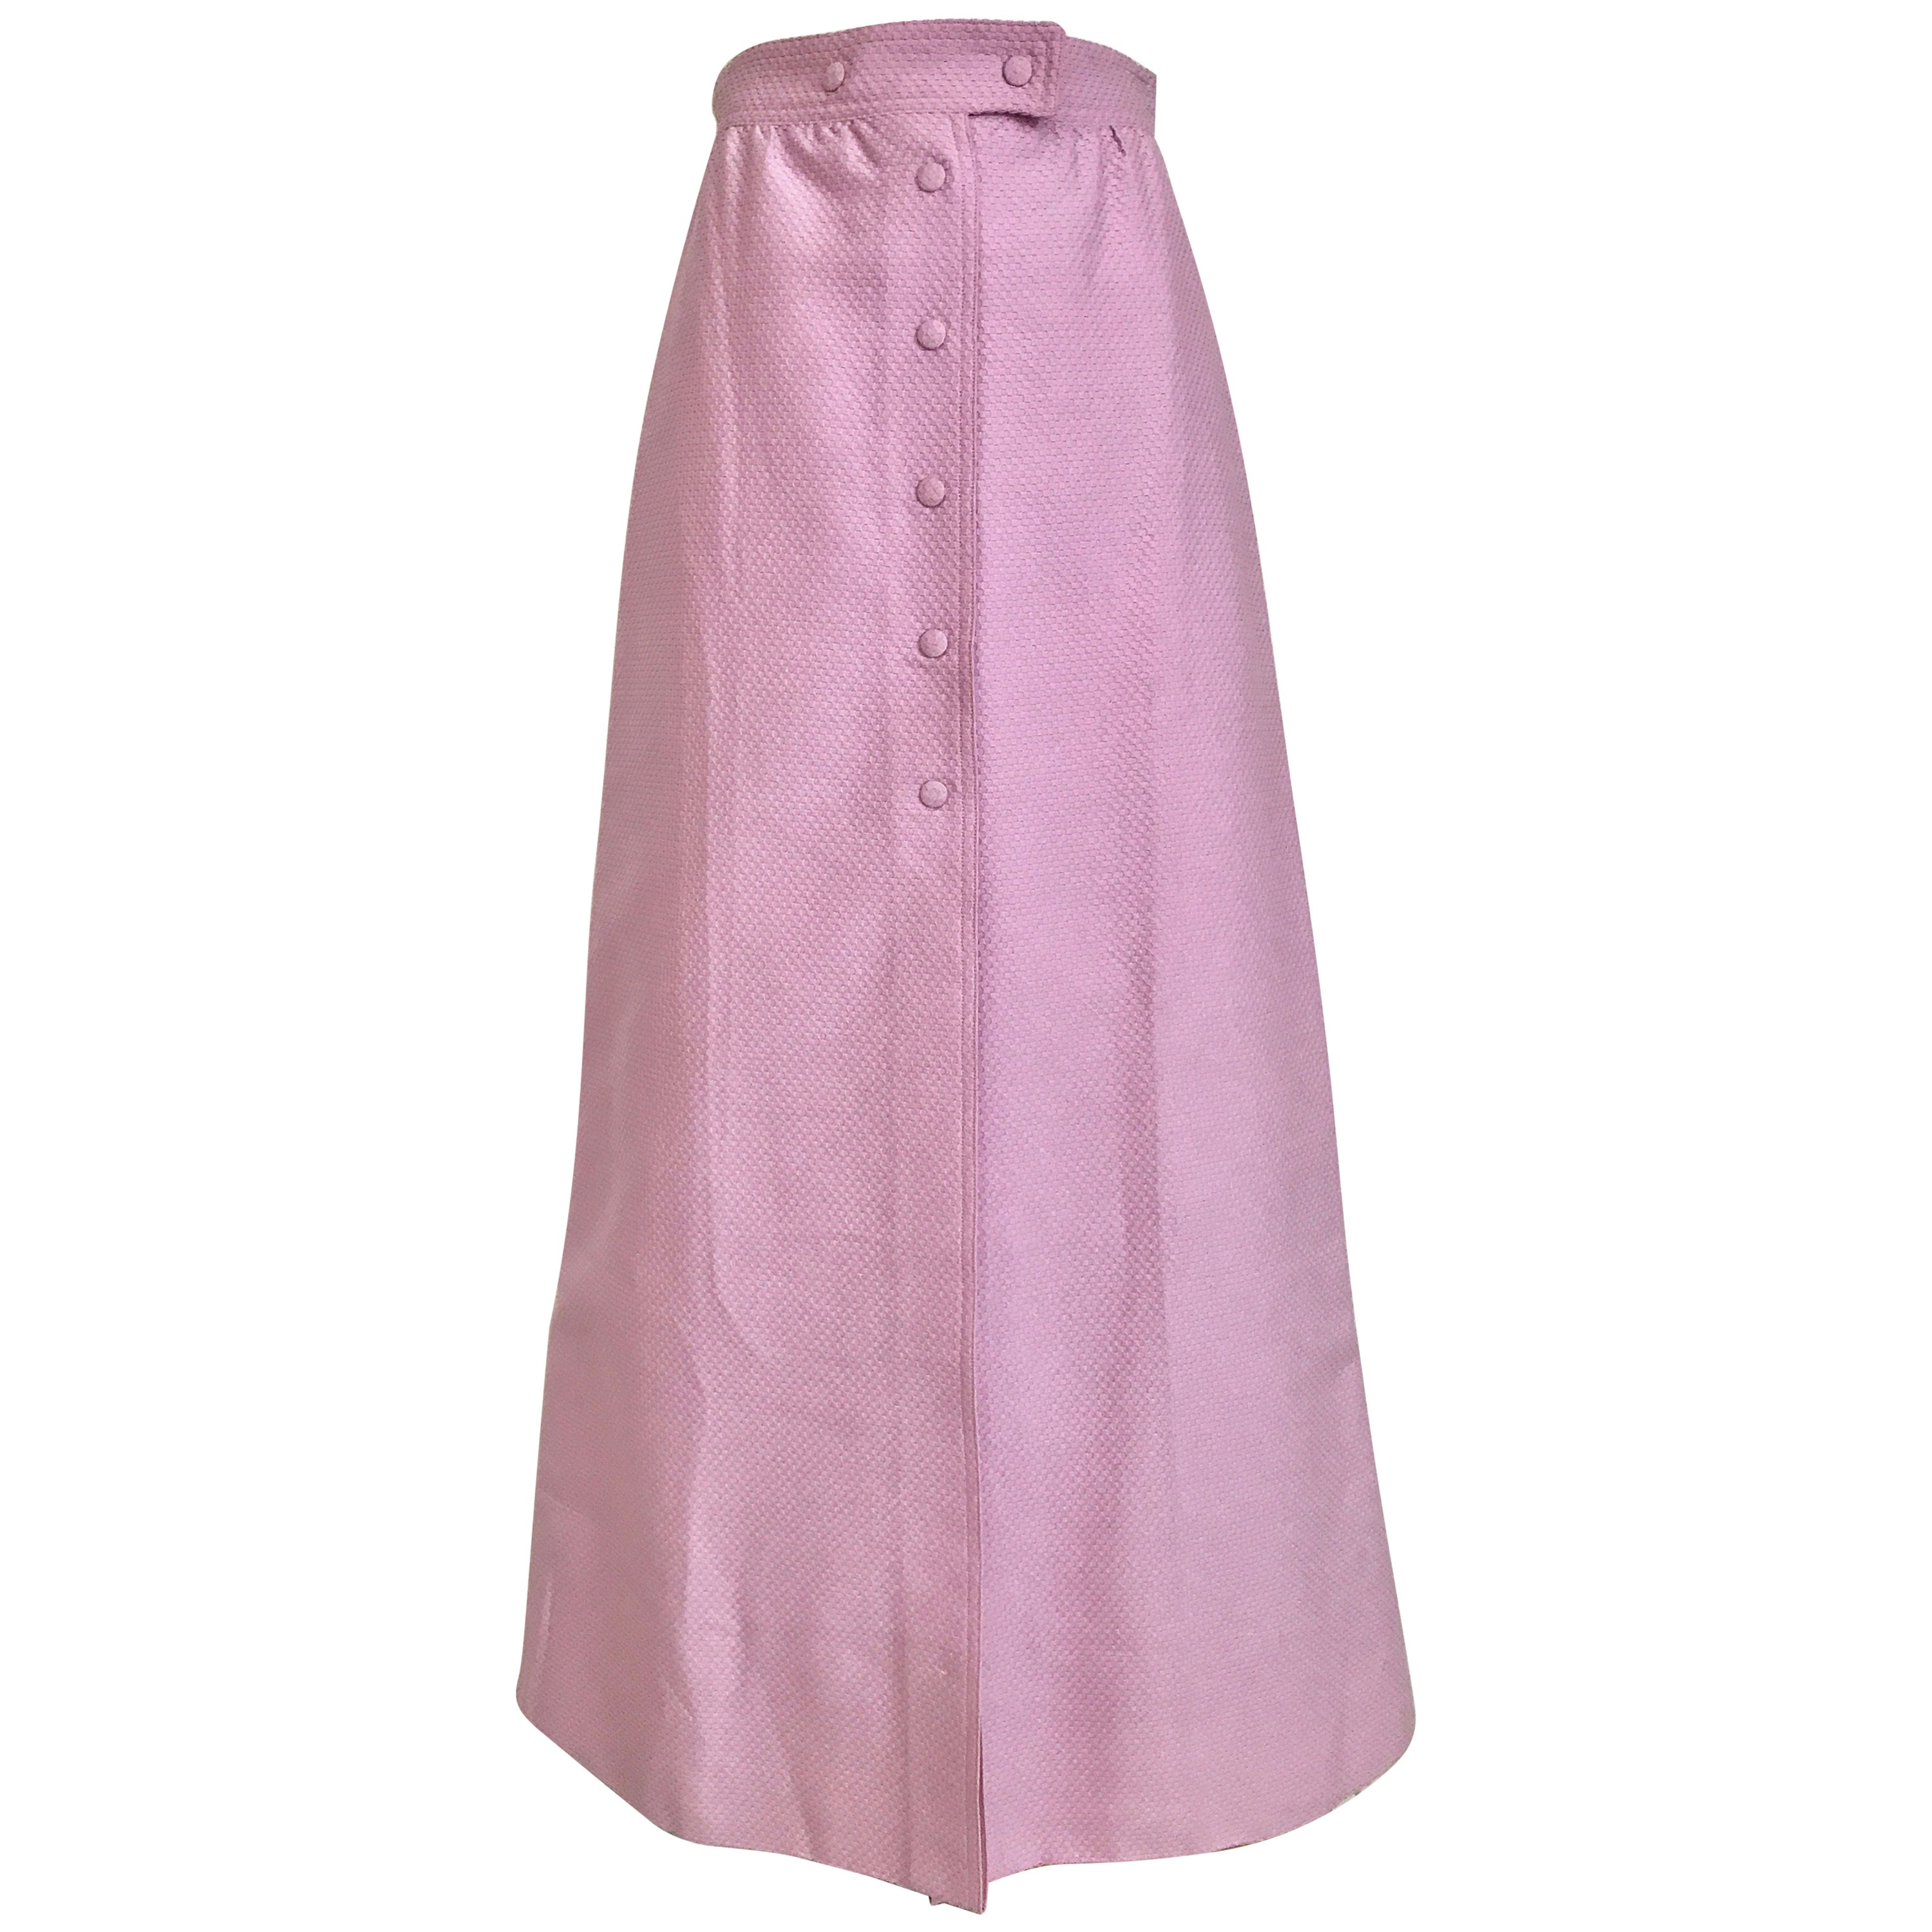 1970s Courrege Pink A Line Maxi Cotton Skirt